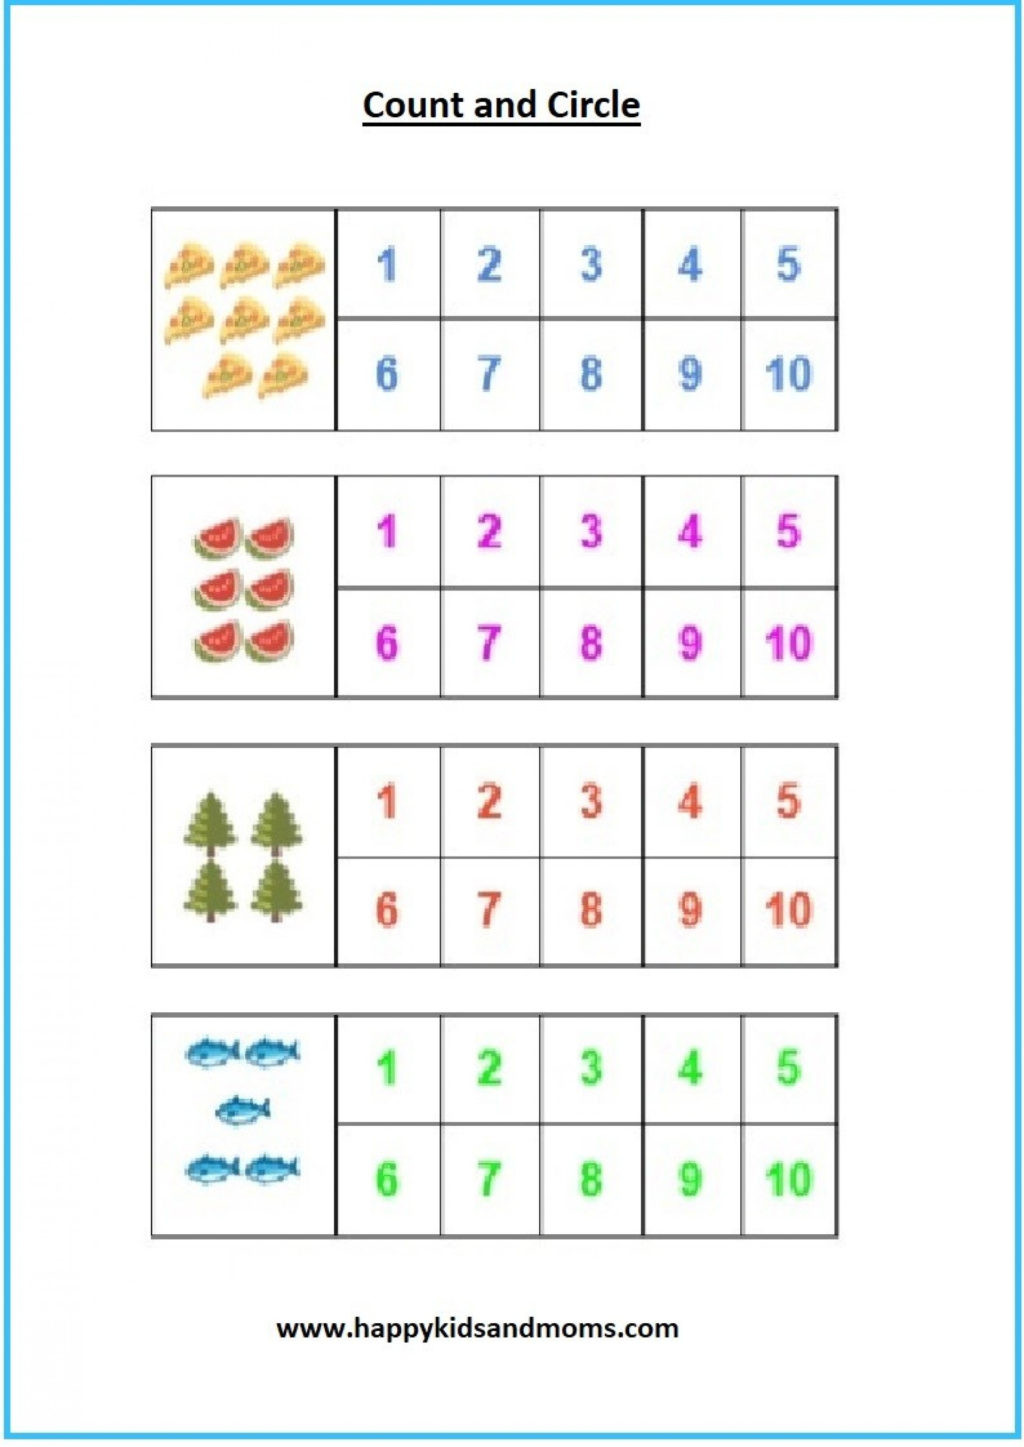 free kindergarten math worksheets pictures misc preschool worksheet pdf for educations maths image ideas inequality 1024x1447